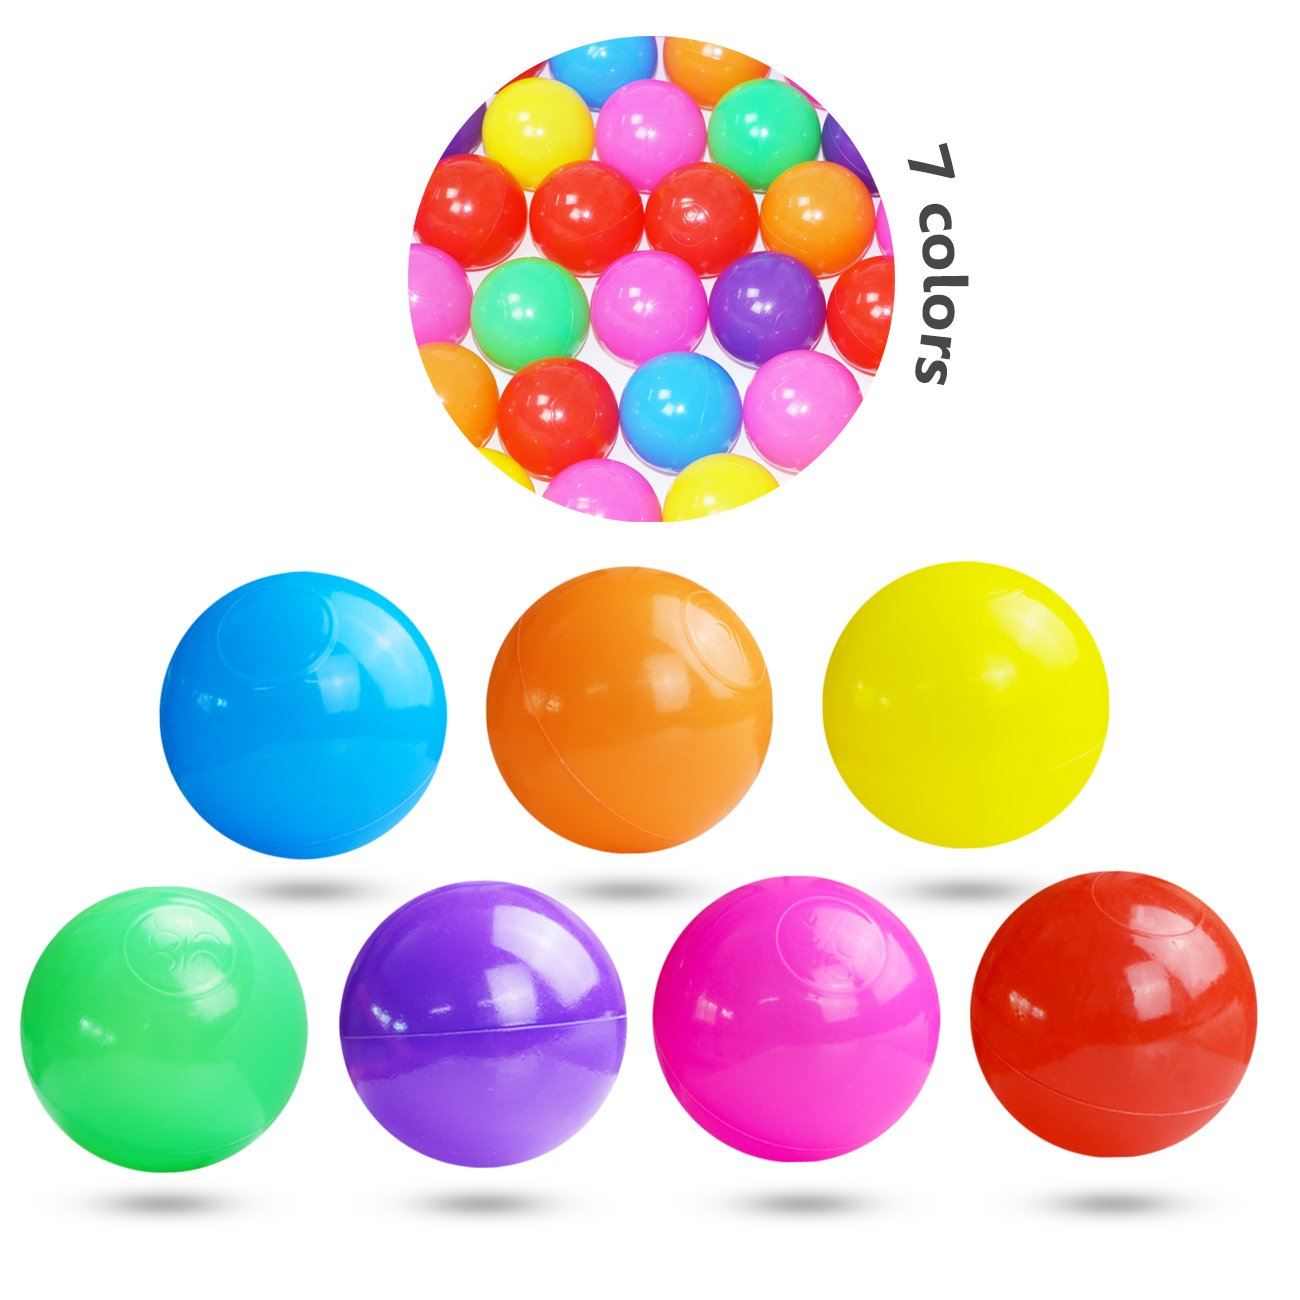 Pit Balls, Dadoudou Colorful Fun Phthalate Free BPA Free Crush Proof Balls Soft Plastic Air-Filled Ocean Ball Playballs for Baby Kids Tent Swim Toys Ball Pack of 50 by Dadoudou (Image #3)